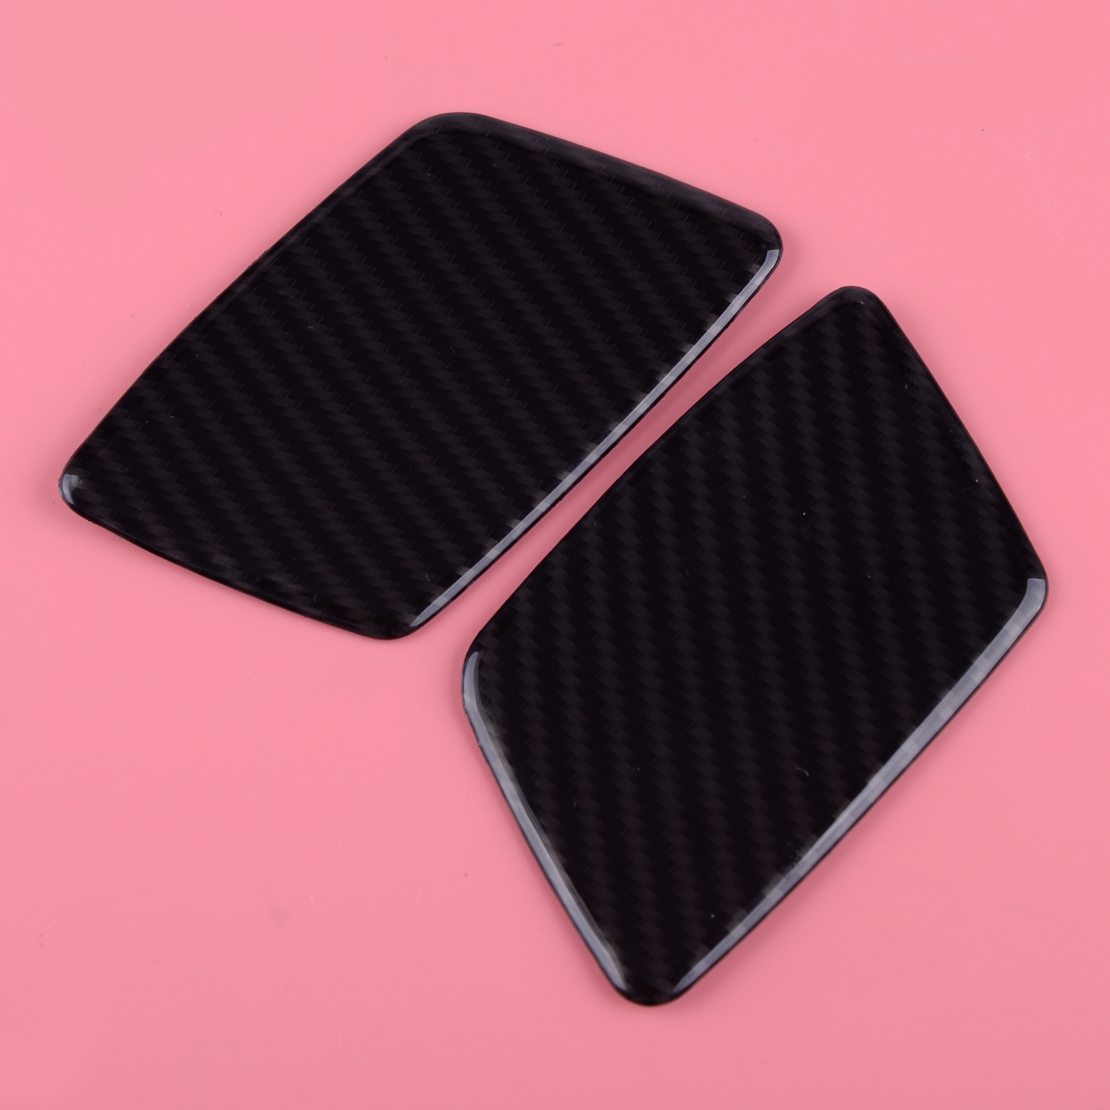 DWCX 2Pcs Car Styling ABS Carbon Fiber Style Front Headlight Washer Spray Cover Fit for Jeep <font><b>Grand</b></font> <font><b>Cherokee</b></font> 2017 2018 <font><b>2019</b></font> image